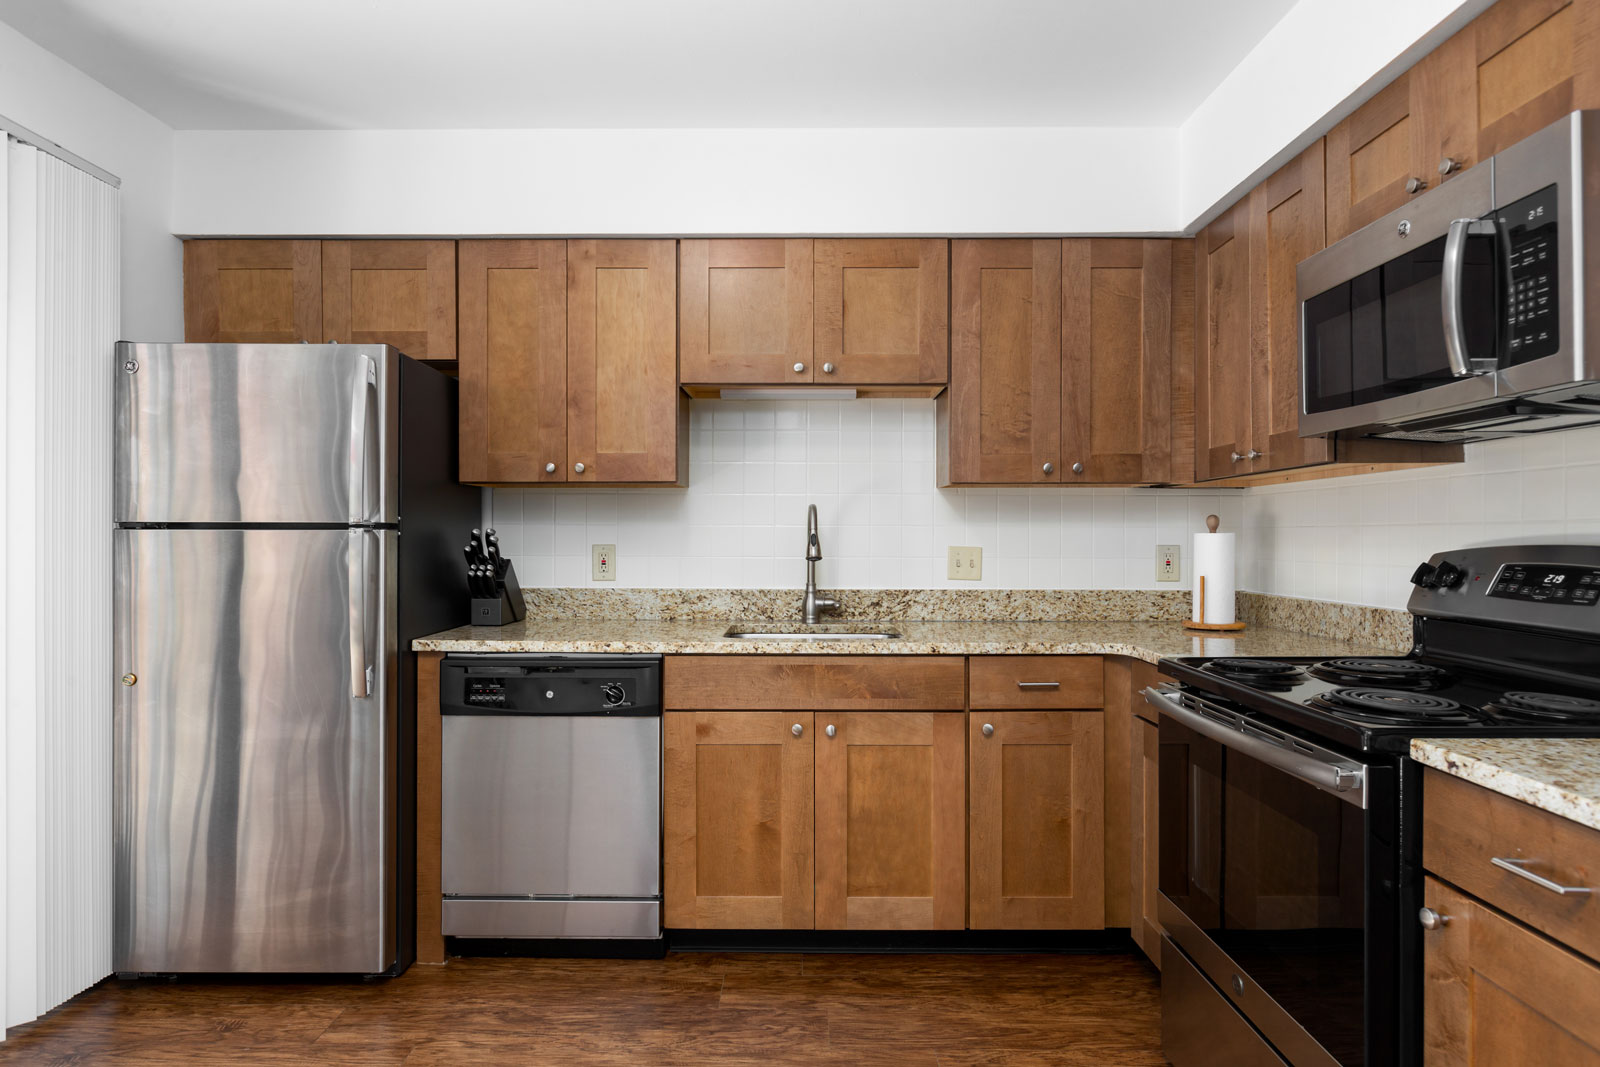 A kitchen with cabinets and stainless steel appliances at Chesterfield Village Apartments